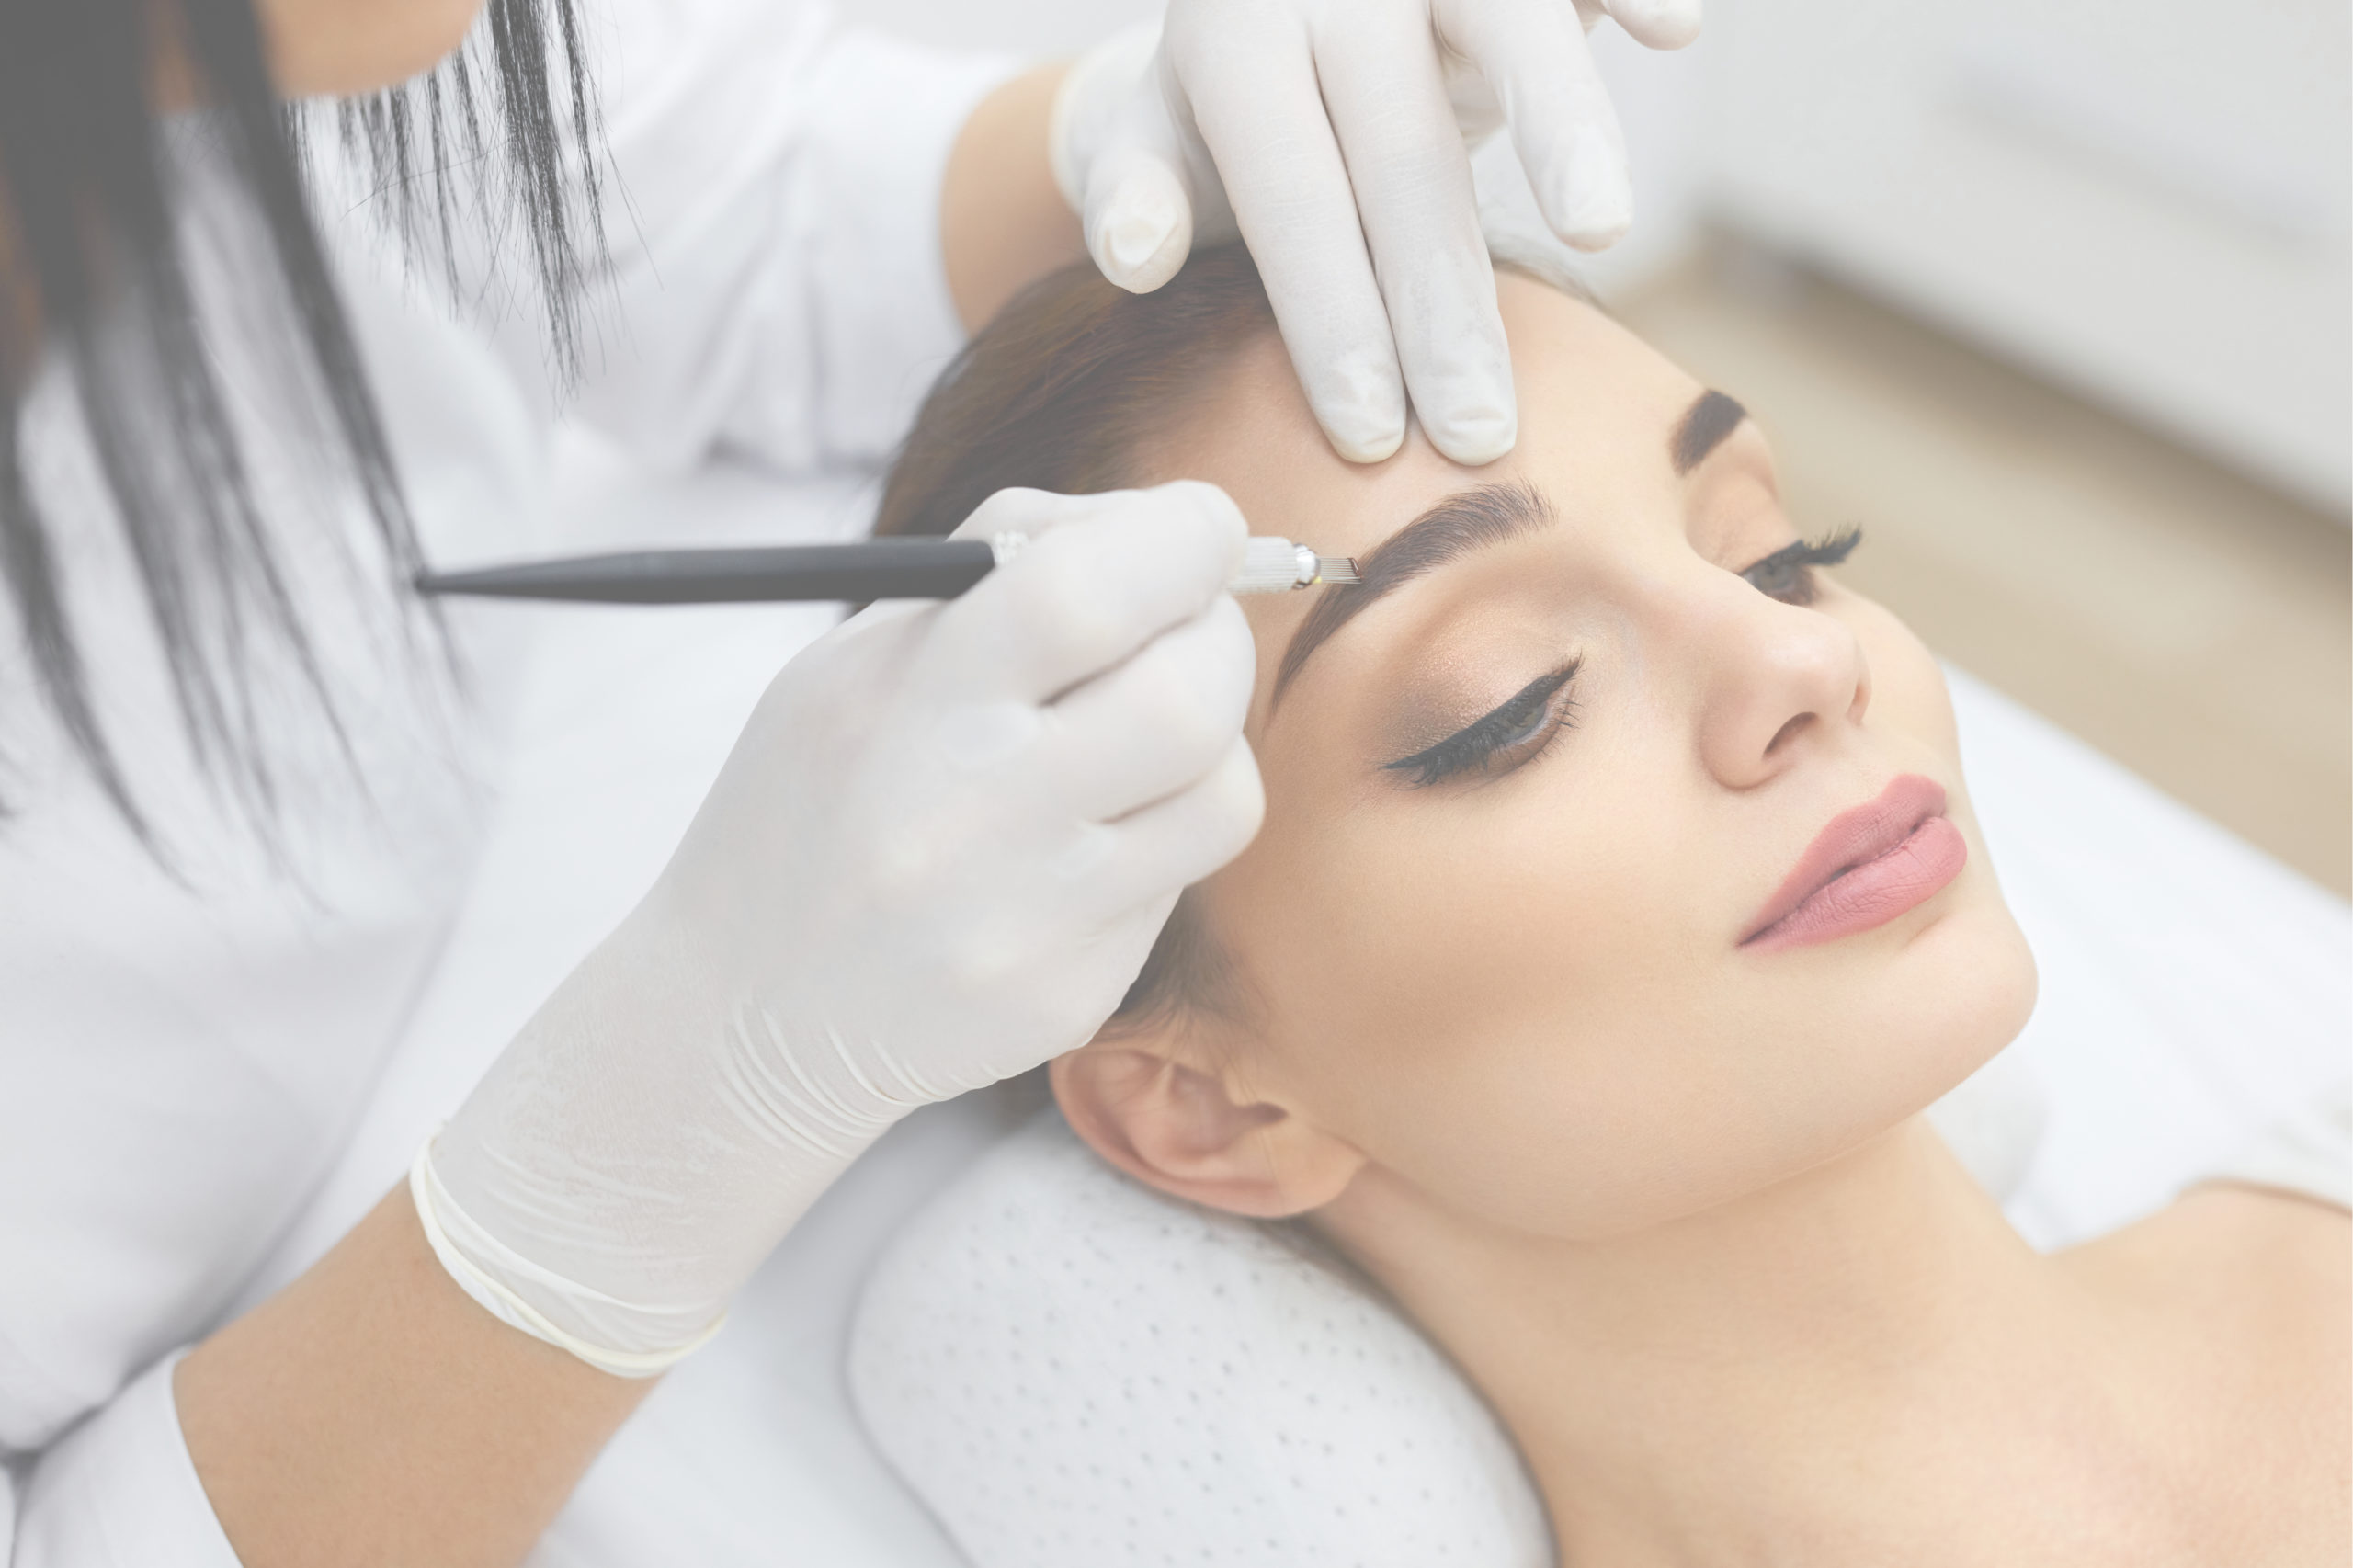 Why is client consent important for Microblading?